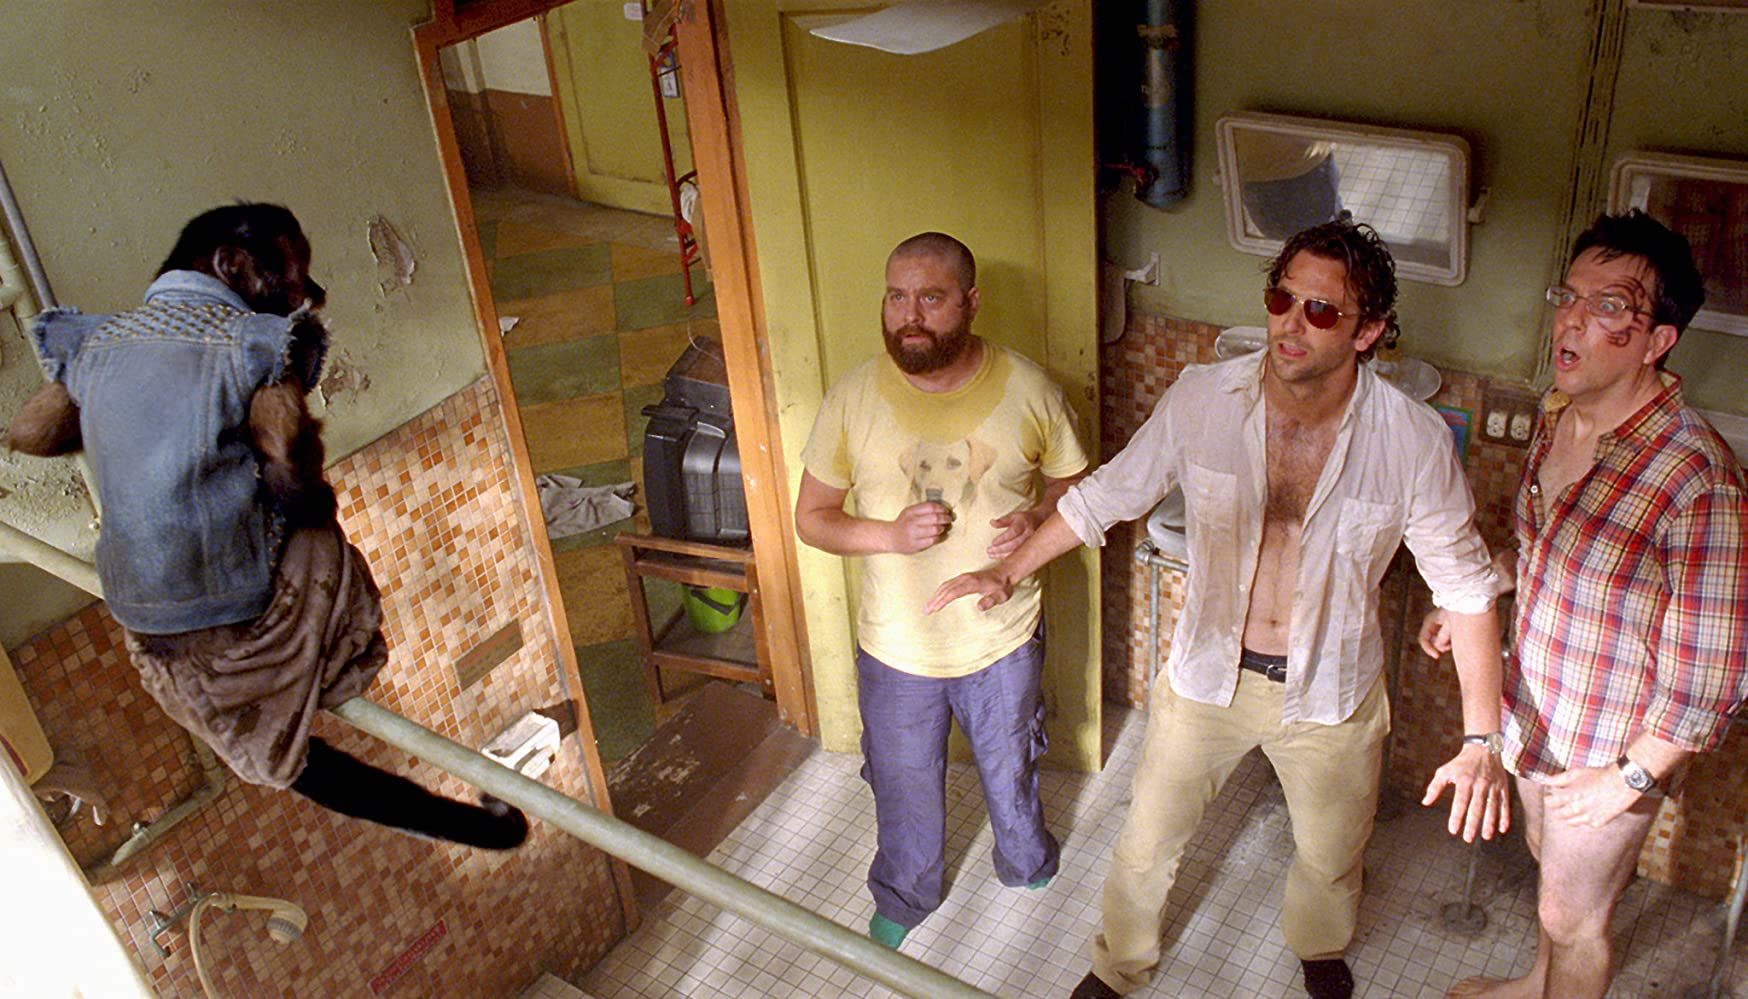 Bradley Cooper, Zach Galifianakis, and Ed Helms in The Hangover Part II (2011)